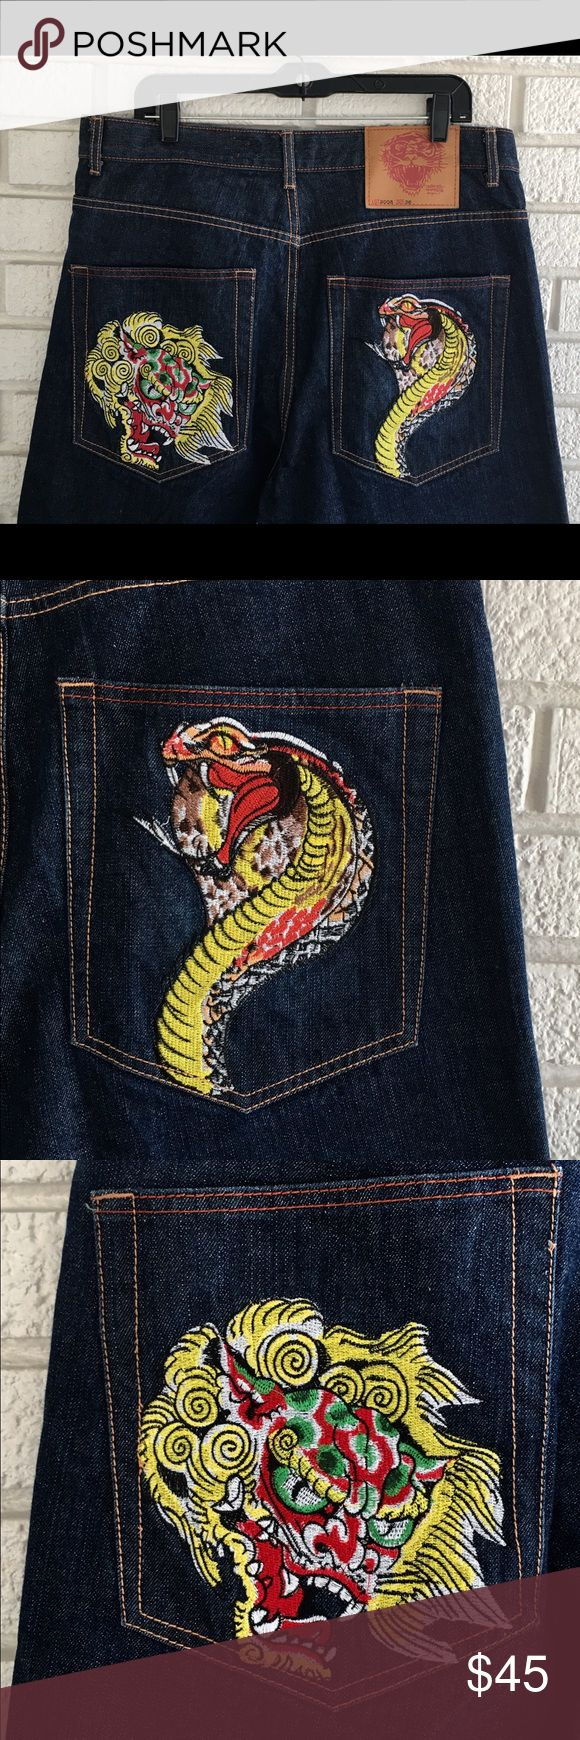 ED HARDY Cobra Snake Oriental Devil Dragon Jeans DON ED HARDY 36 x 26 Cobra Snake Oriental Devil Dragon Embroidered Jeans  ED HARDY jeans with cobra snake and oriental devil / dragon embroidered on pockets.  Label says size 36 (see measurements below) and these are button fly.  In good pre-owned condition with normal wear as pictured.  Measurements are approximate and taken when laying flat:  Waist:  36 inches total  Rise:   12 3/4 inches waist to crotch seam  Inseam:  26 inches cuff to…